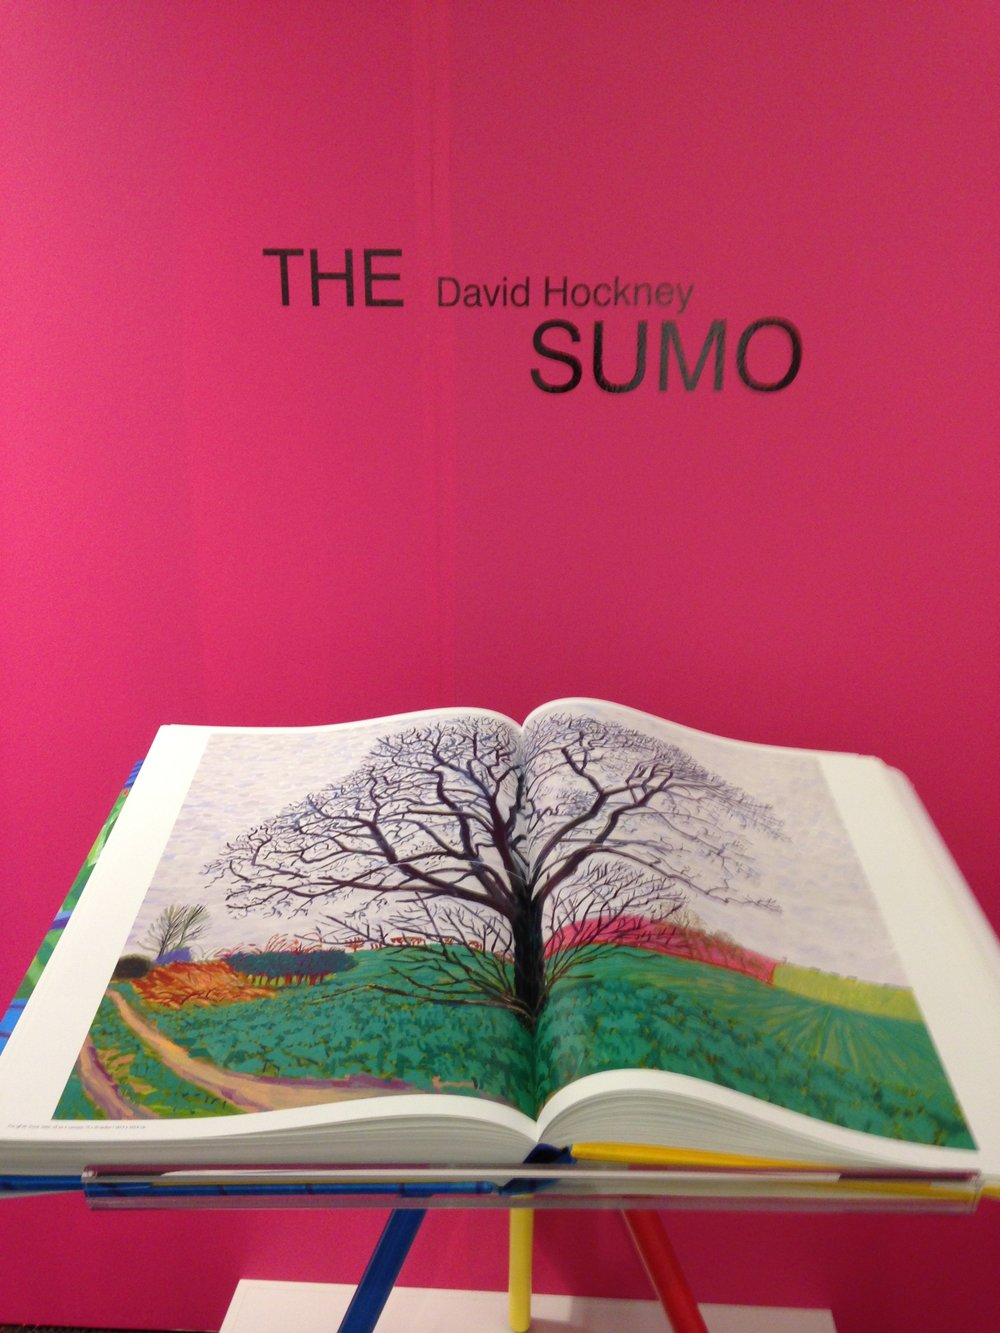 """Taschen's """"Sumo-sized"""" David Hockney book, in an edition of 9,000, priced at $2,500.00"""